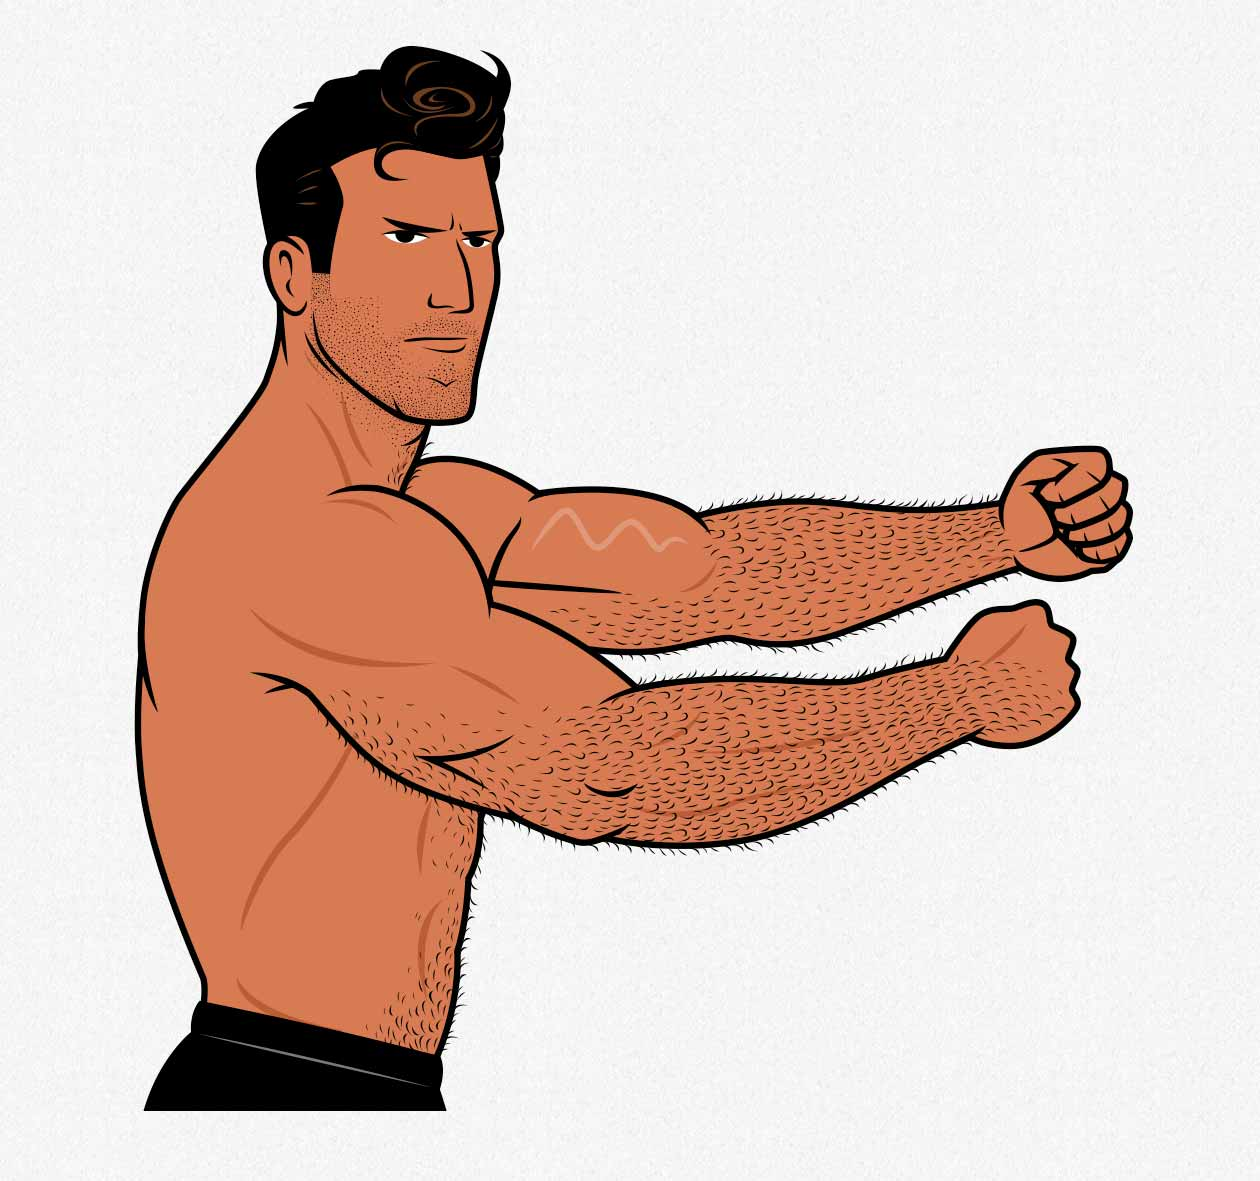 Illustration of a bodybuilder flexing his arms.